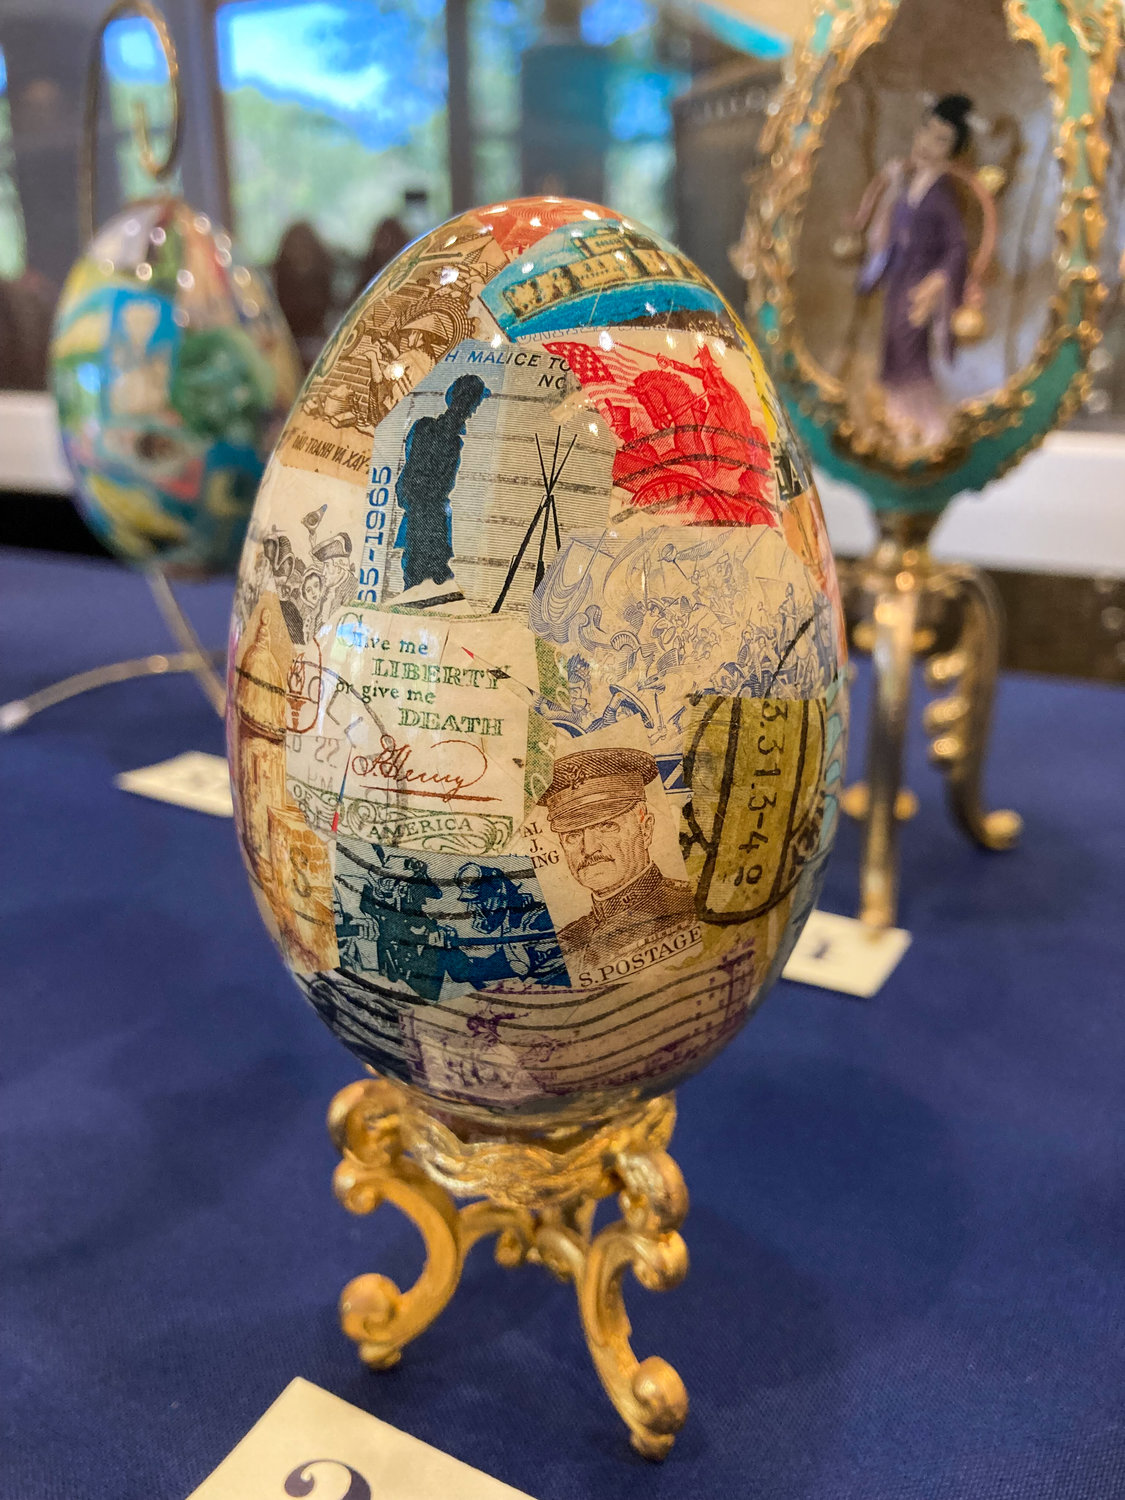 A goose egg decorated with collected stamps from around the world.